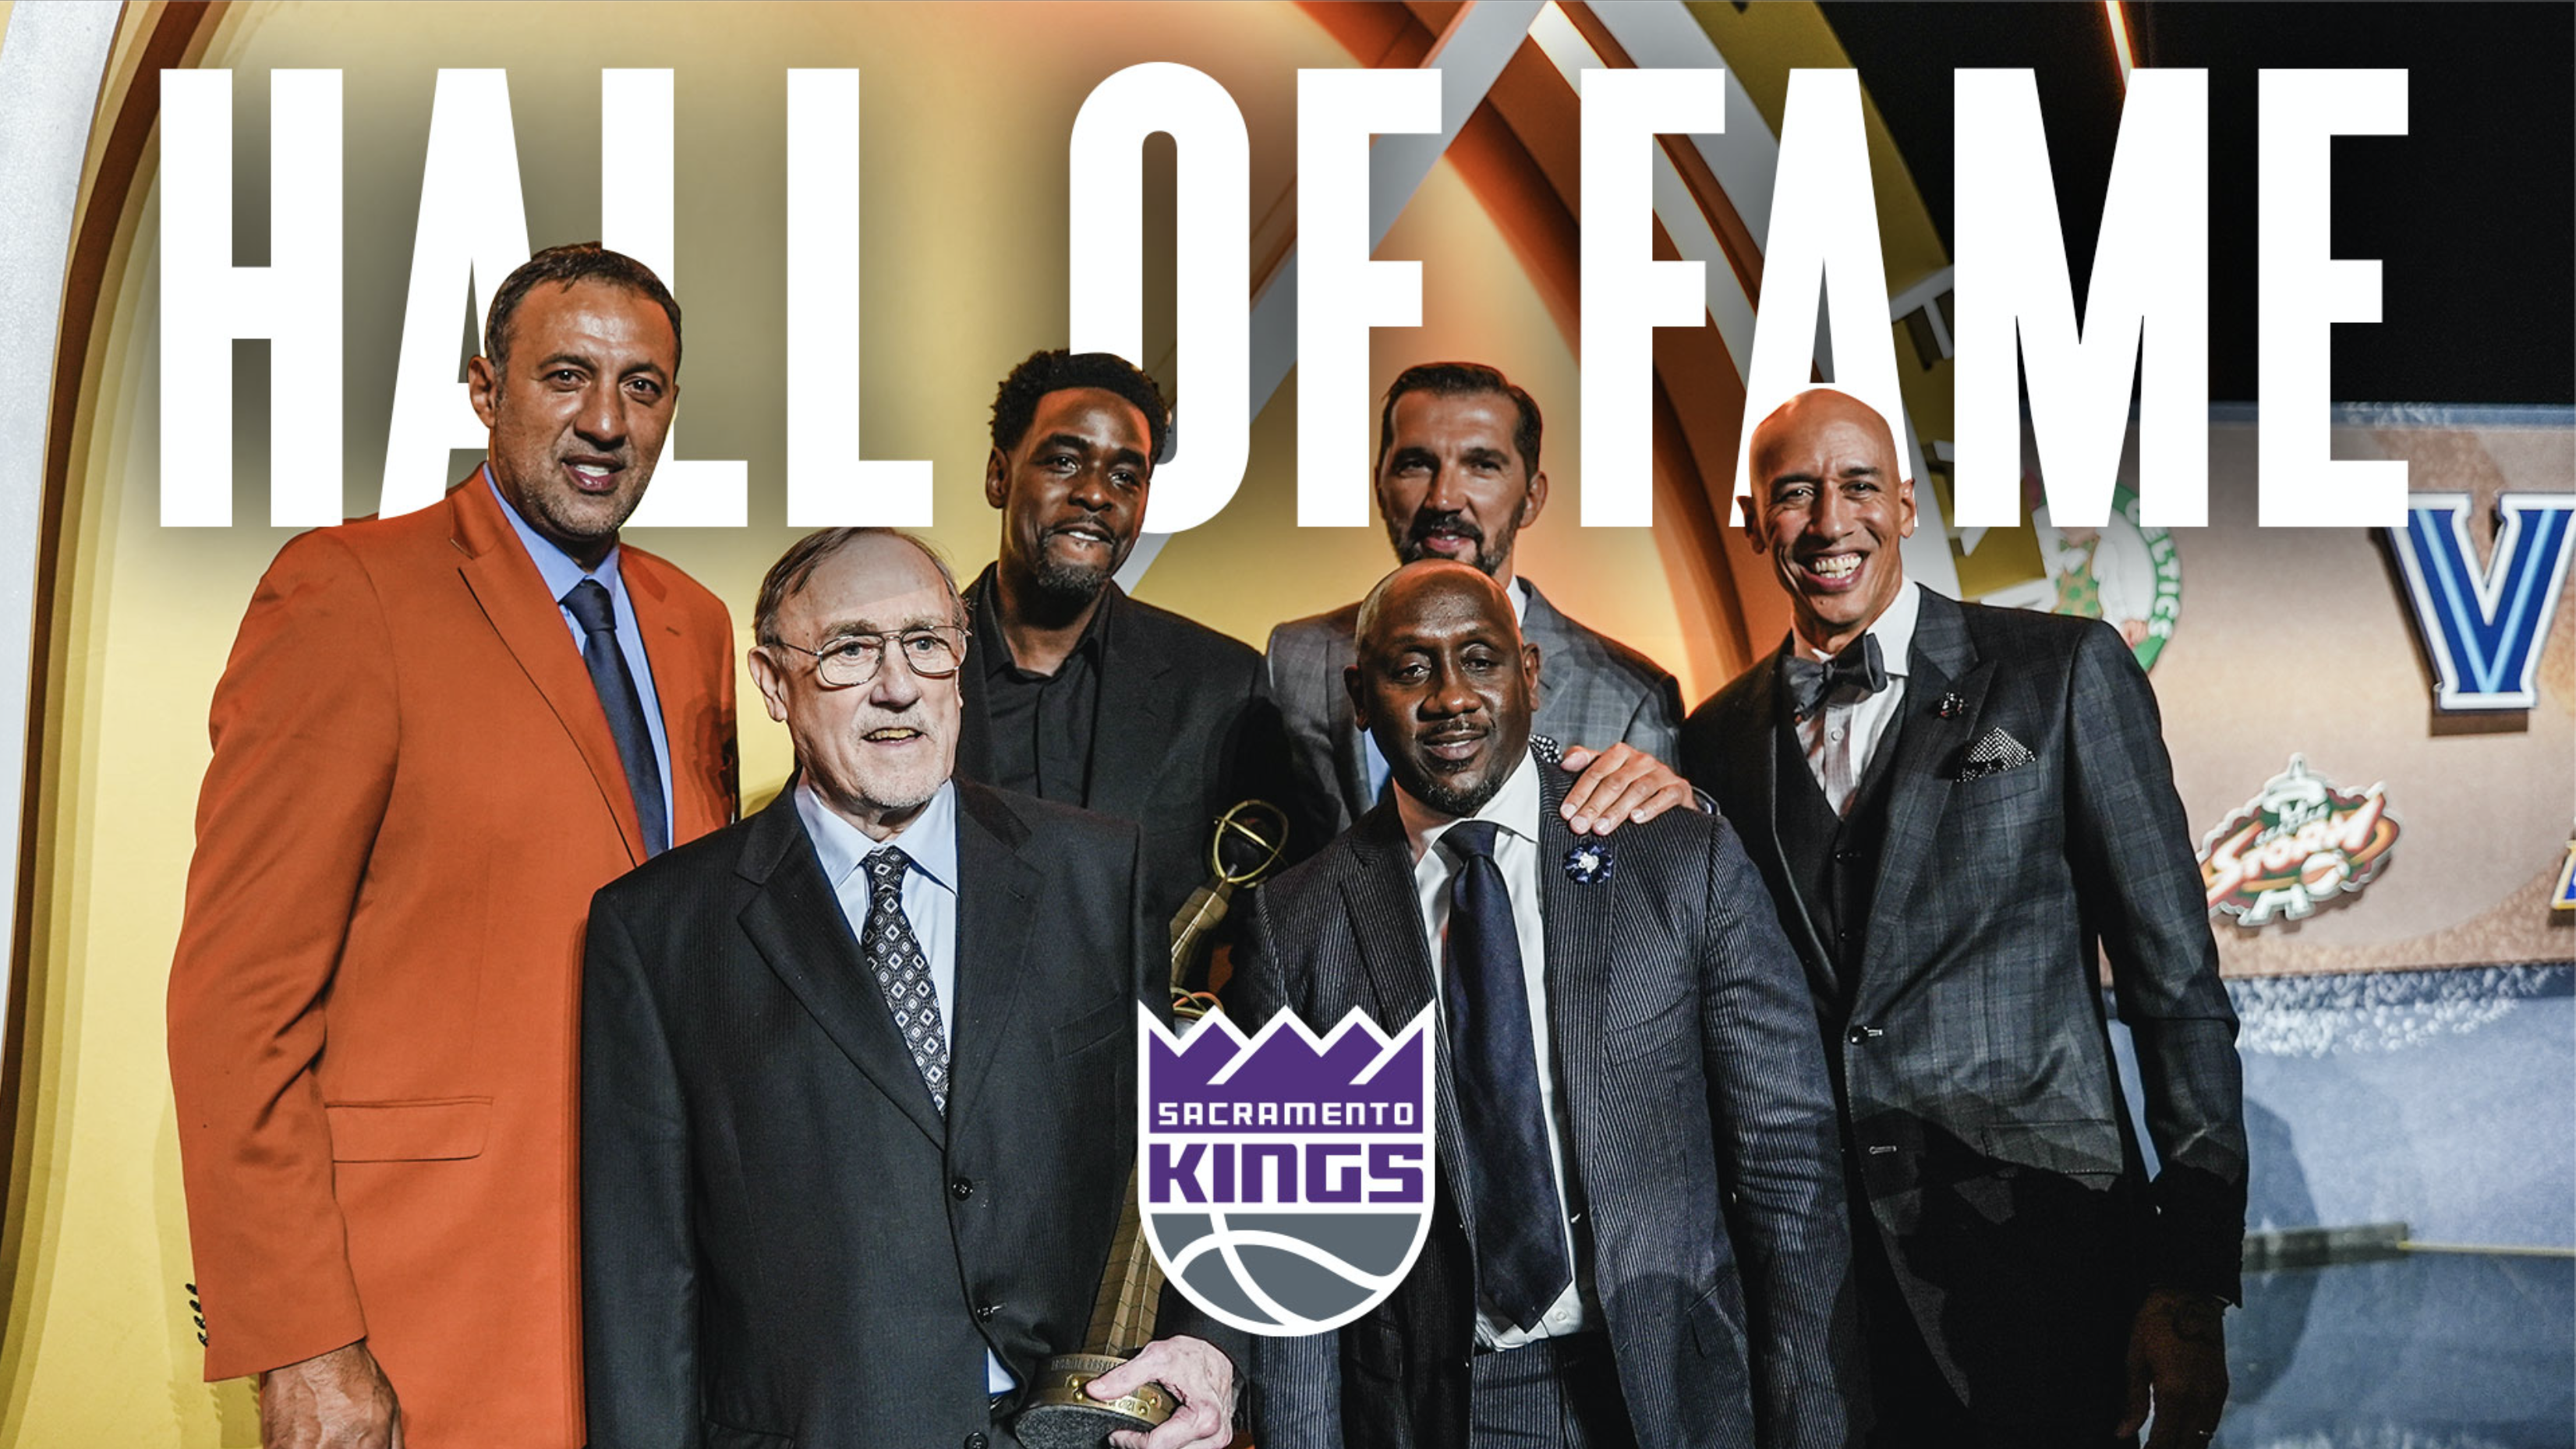 Hall of Fame All Access